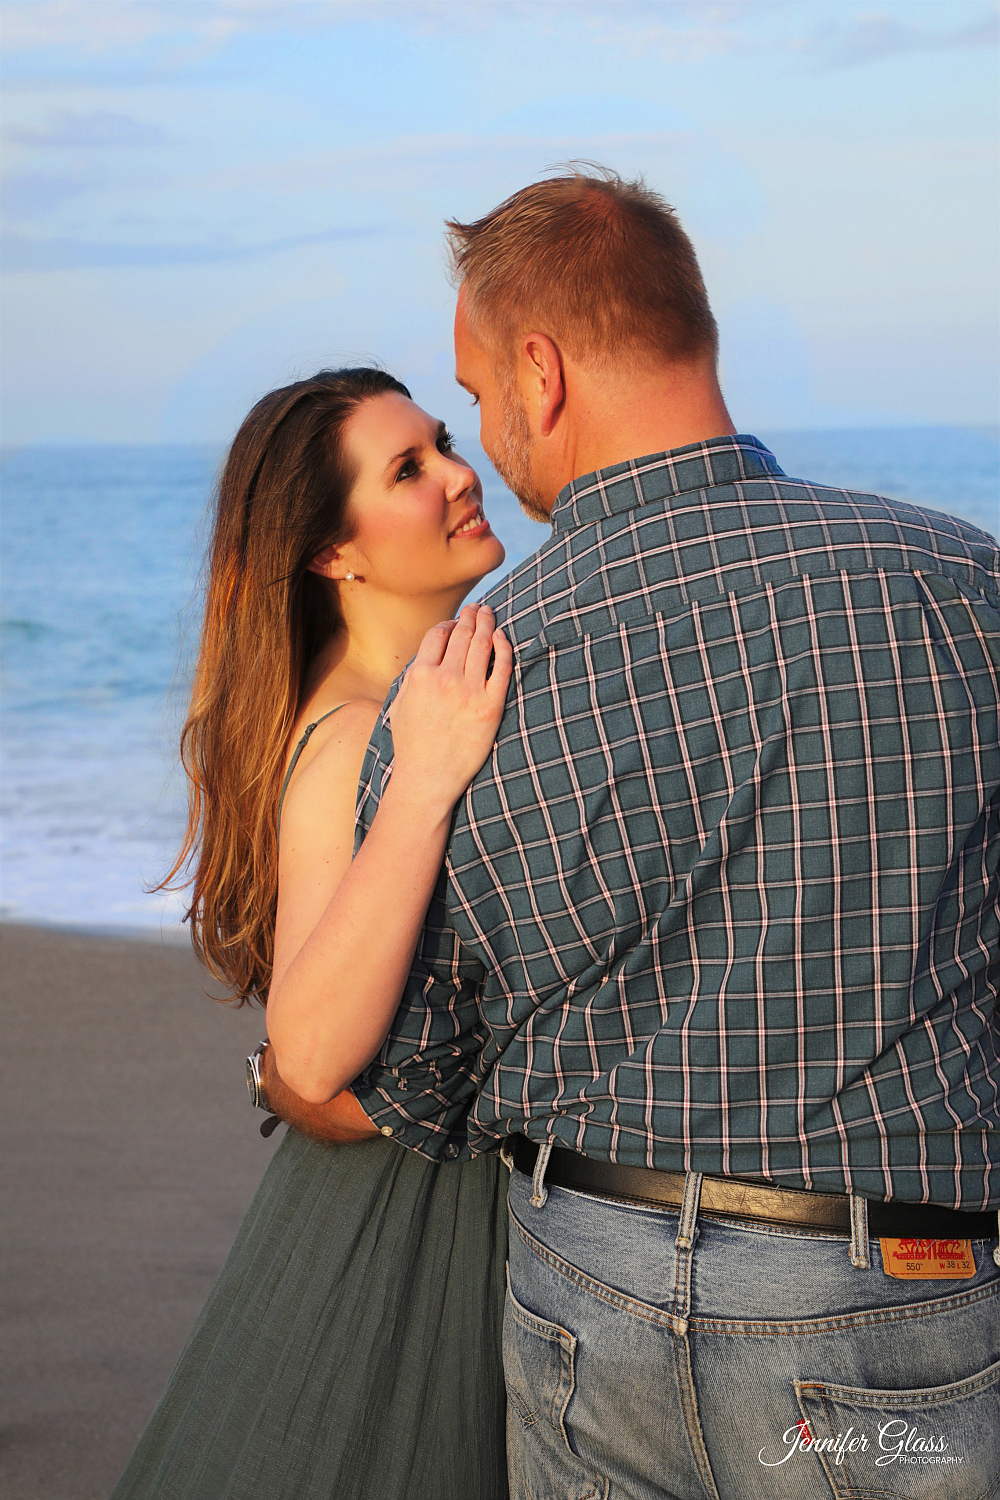 man and woman embrace on beach Photo